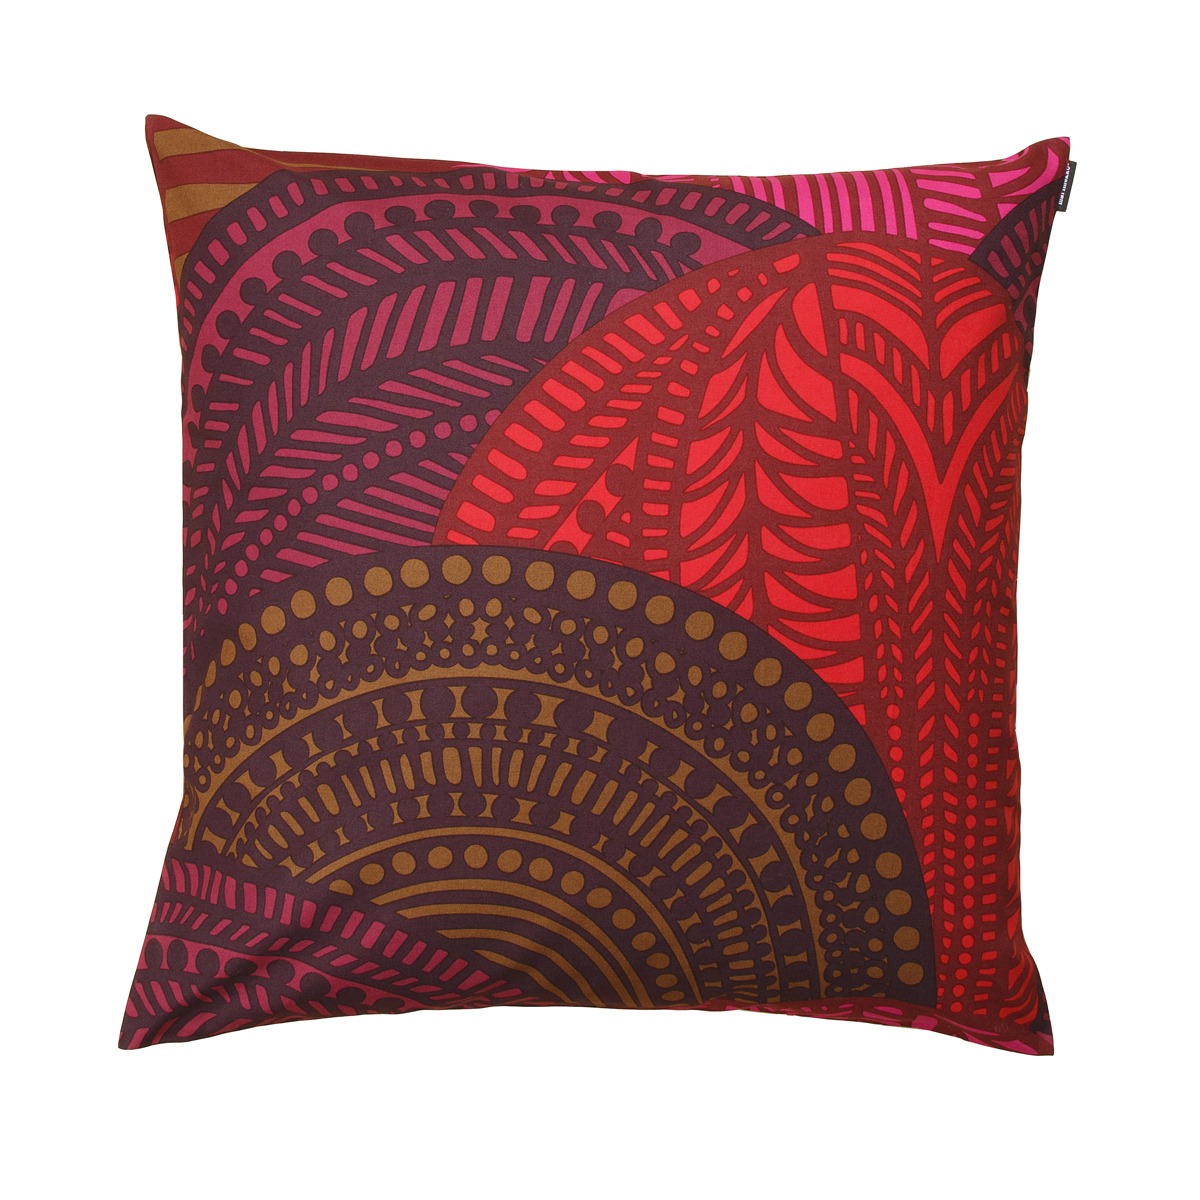 Throw Pillow Red : Marimekko Vuorilaakso Red Throw Pillow - Marimekko Throw Pillows & Blankets